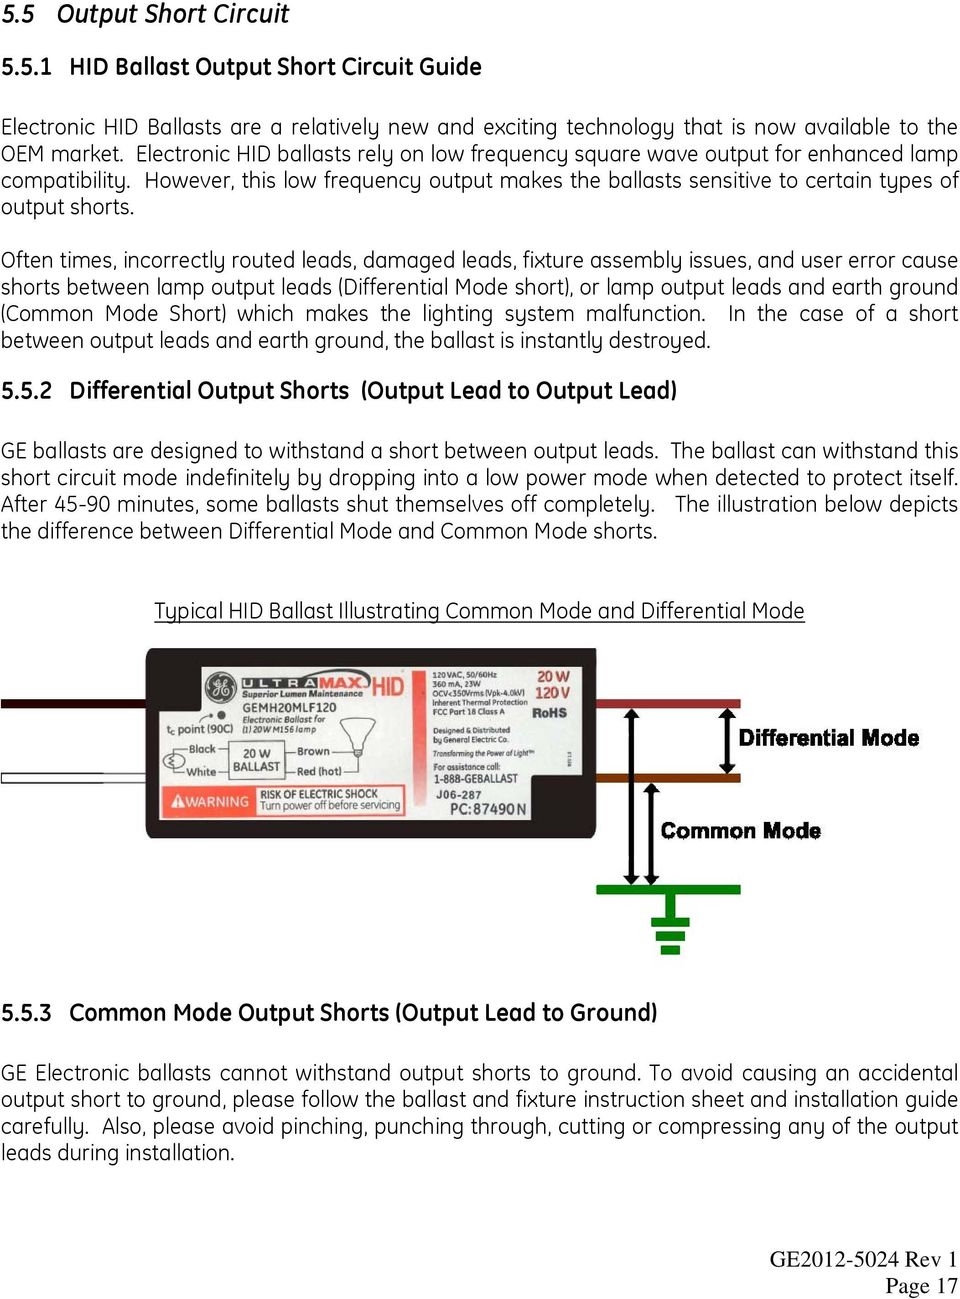 Hid Ballast Application Guide Pdf Ge Dimming Wiring Diagram Often Times Incorrectly Routed Leads Damaged Fixture Assembly Issues And User